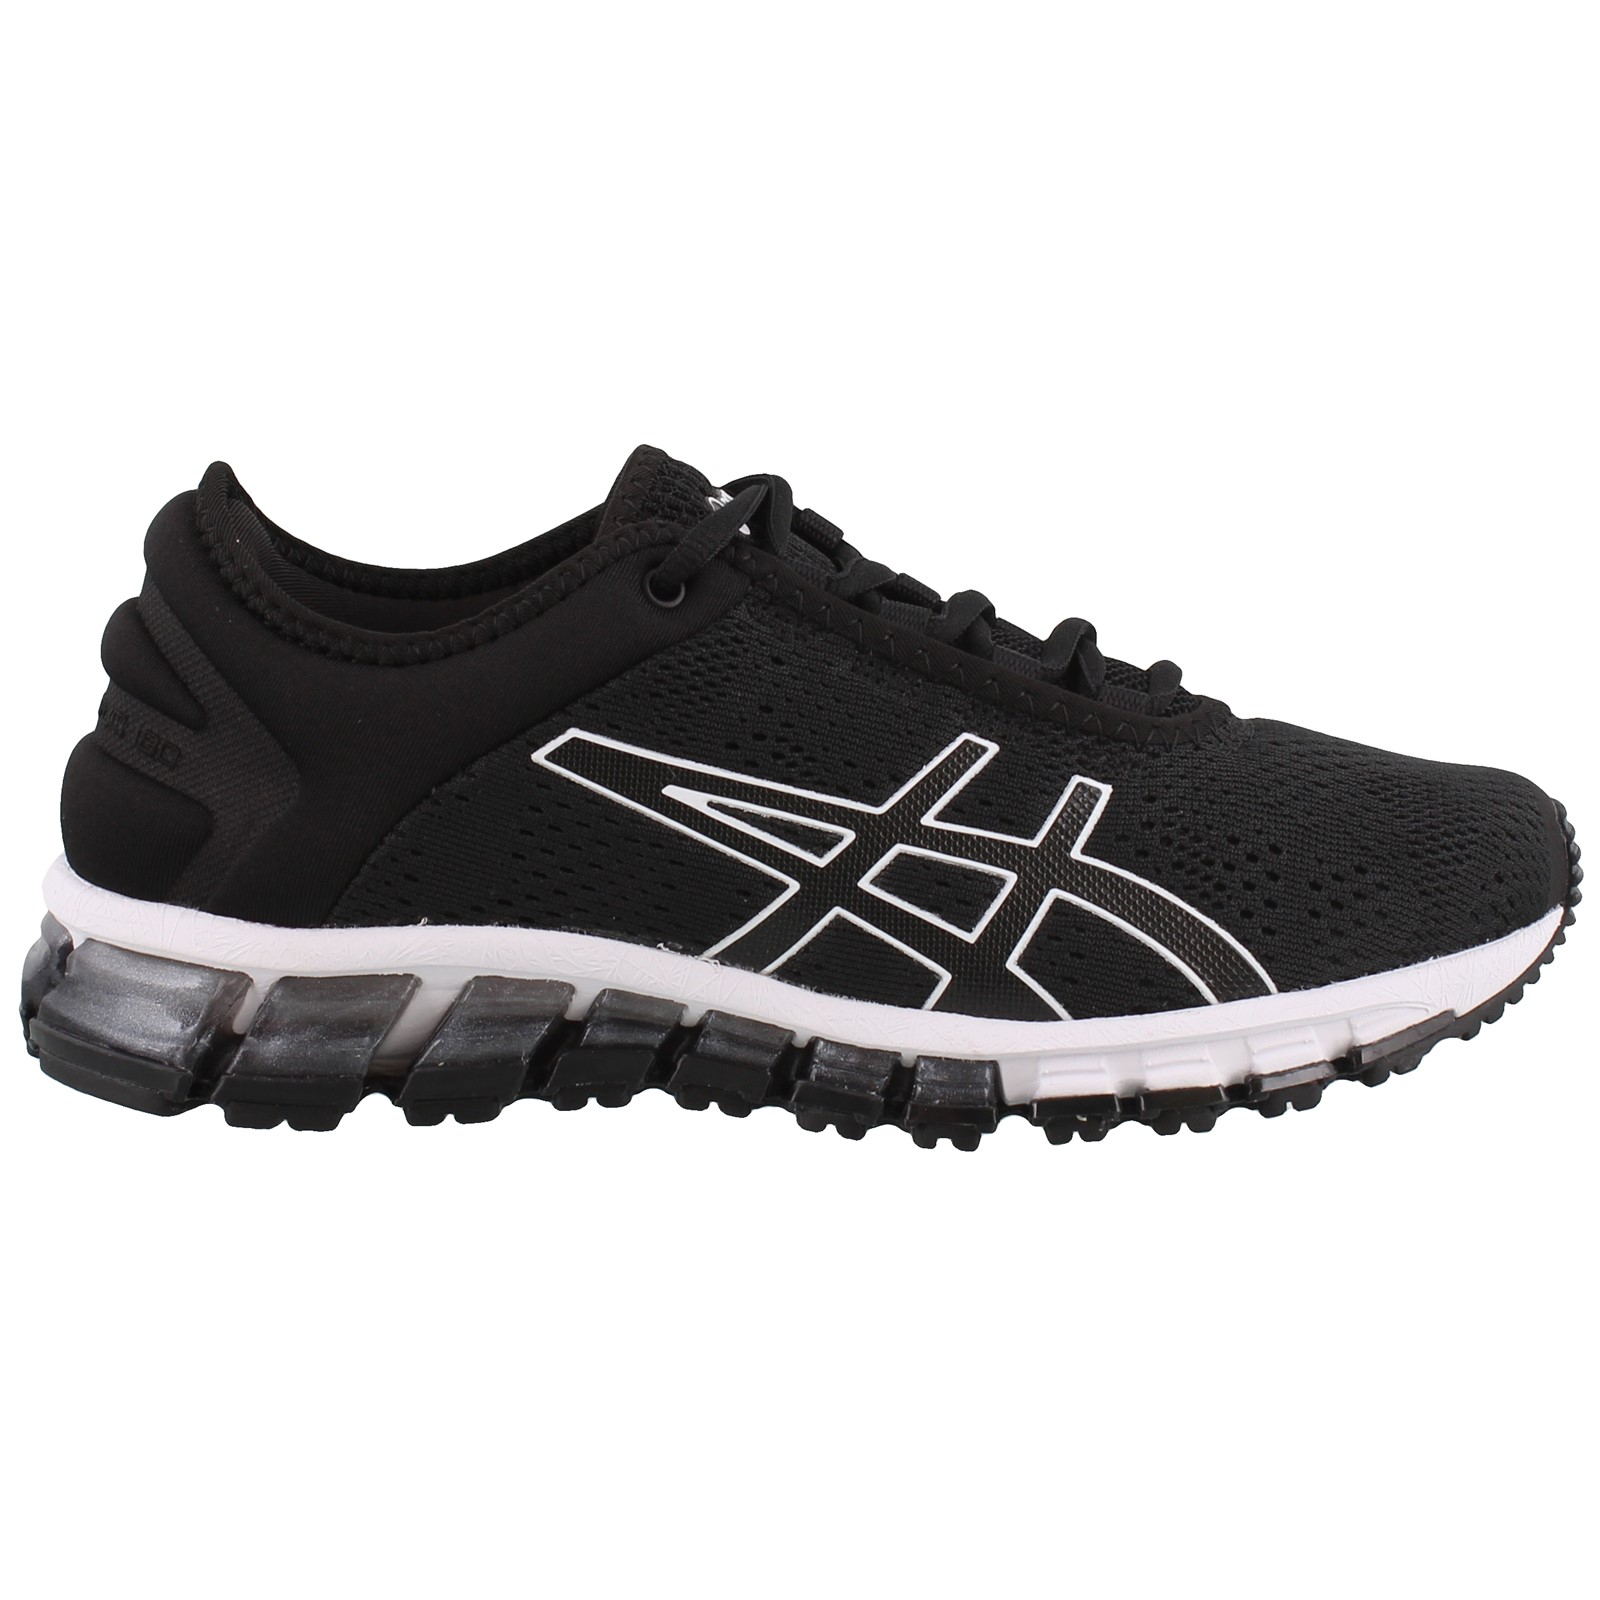 Women's ASICS, GEL QUANTUM 180V3 RUNNING SHOE